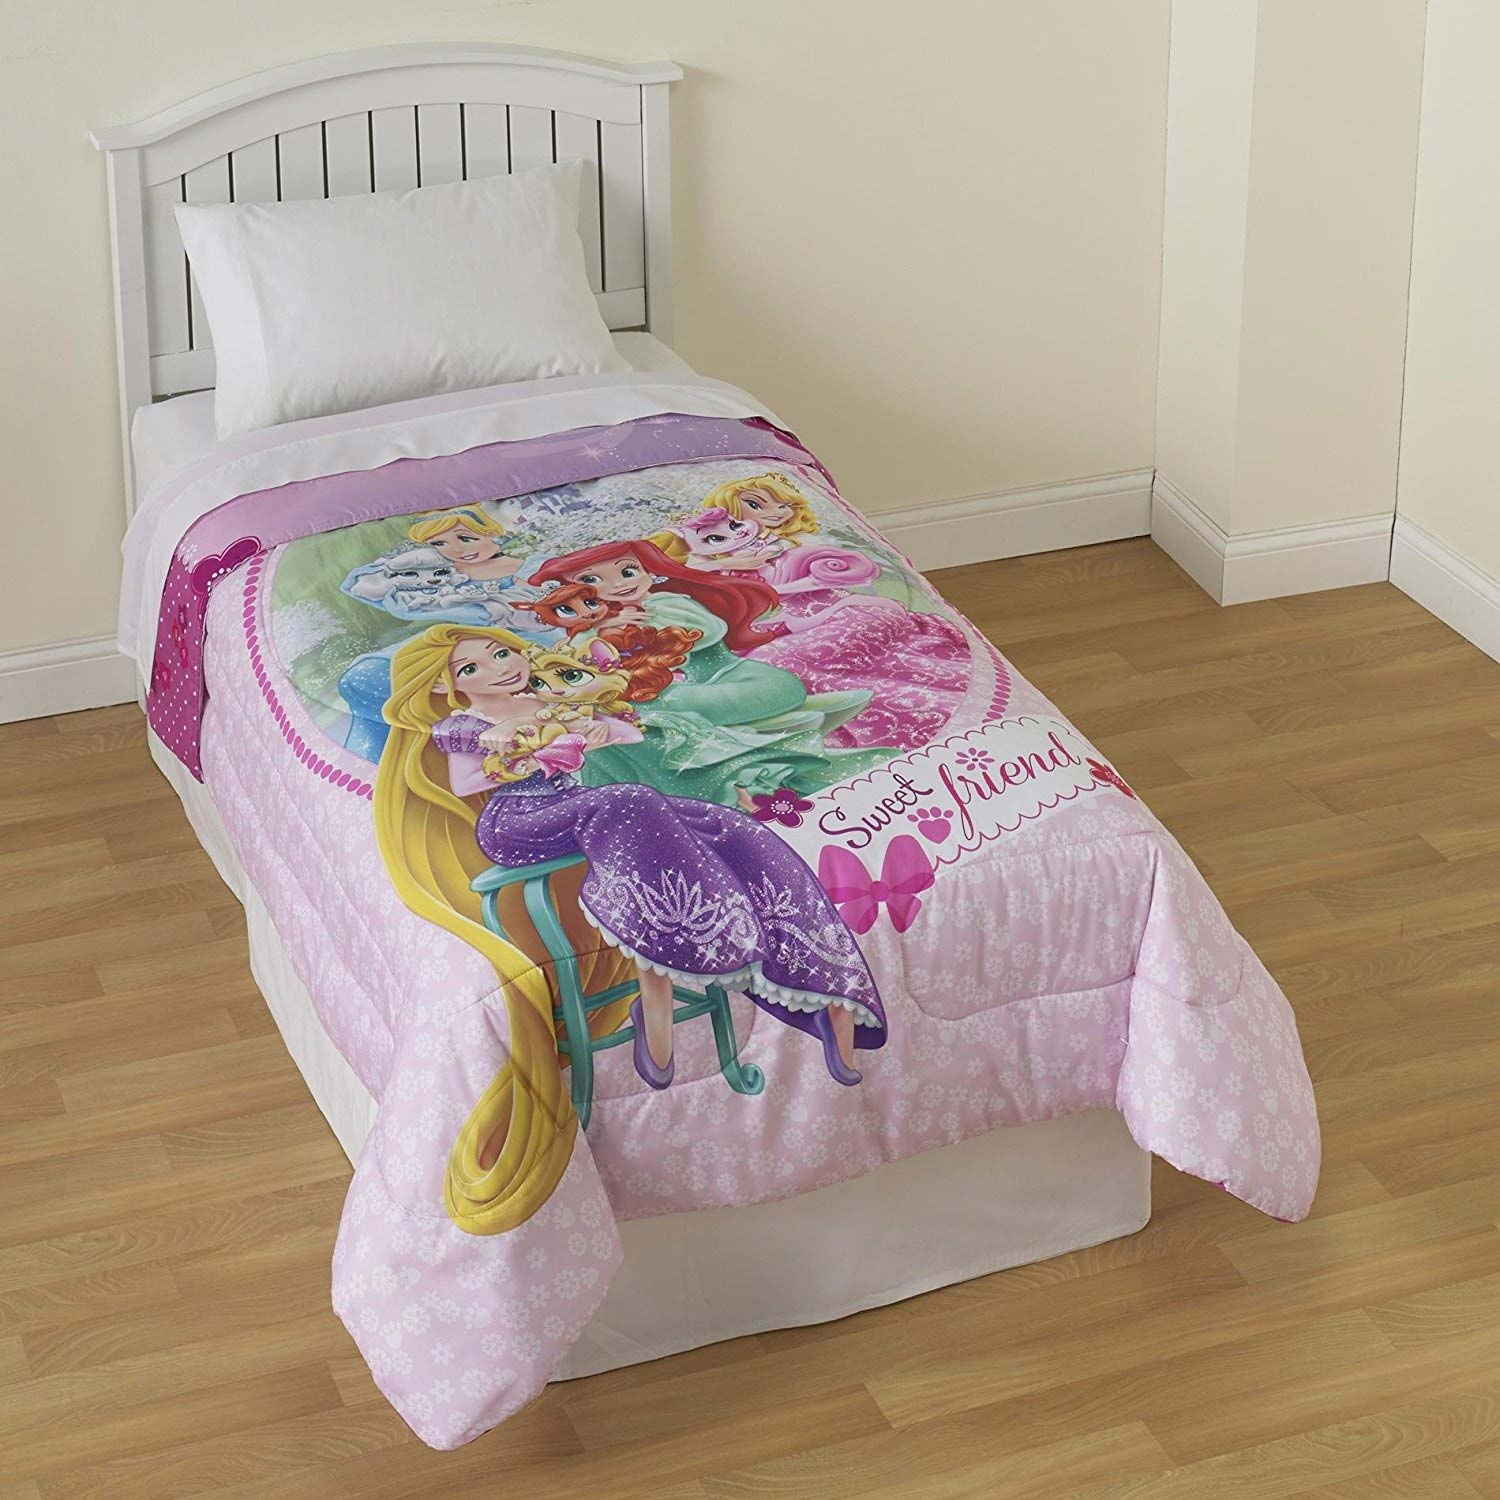 Palace Pets Twin Bed Comforter - Disney Princess Sweet Pet Friends Bedding MJ5405